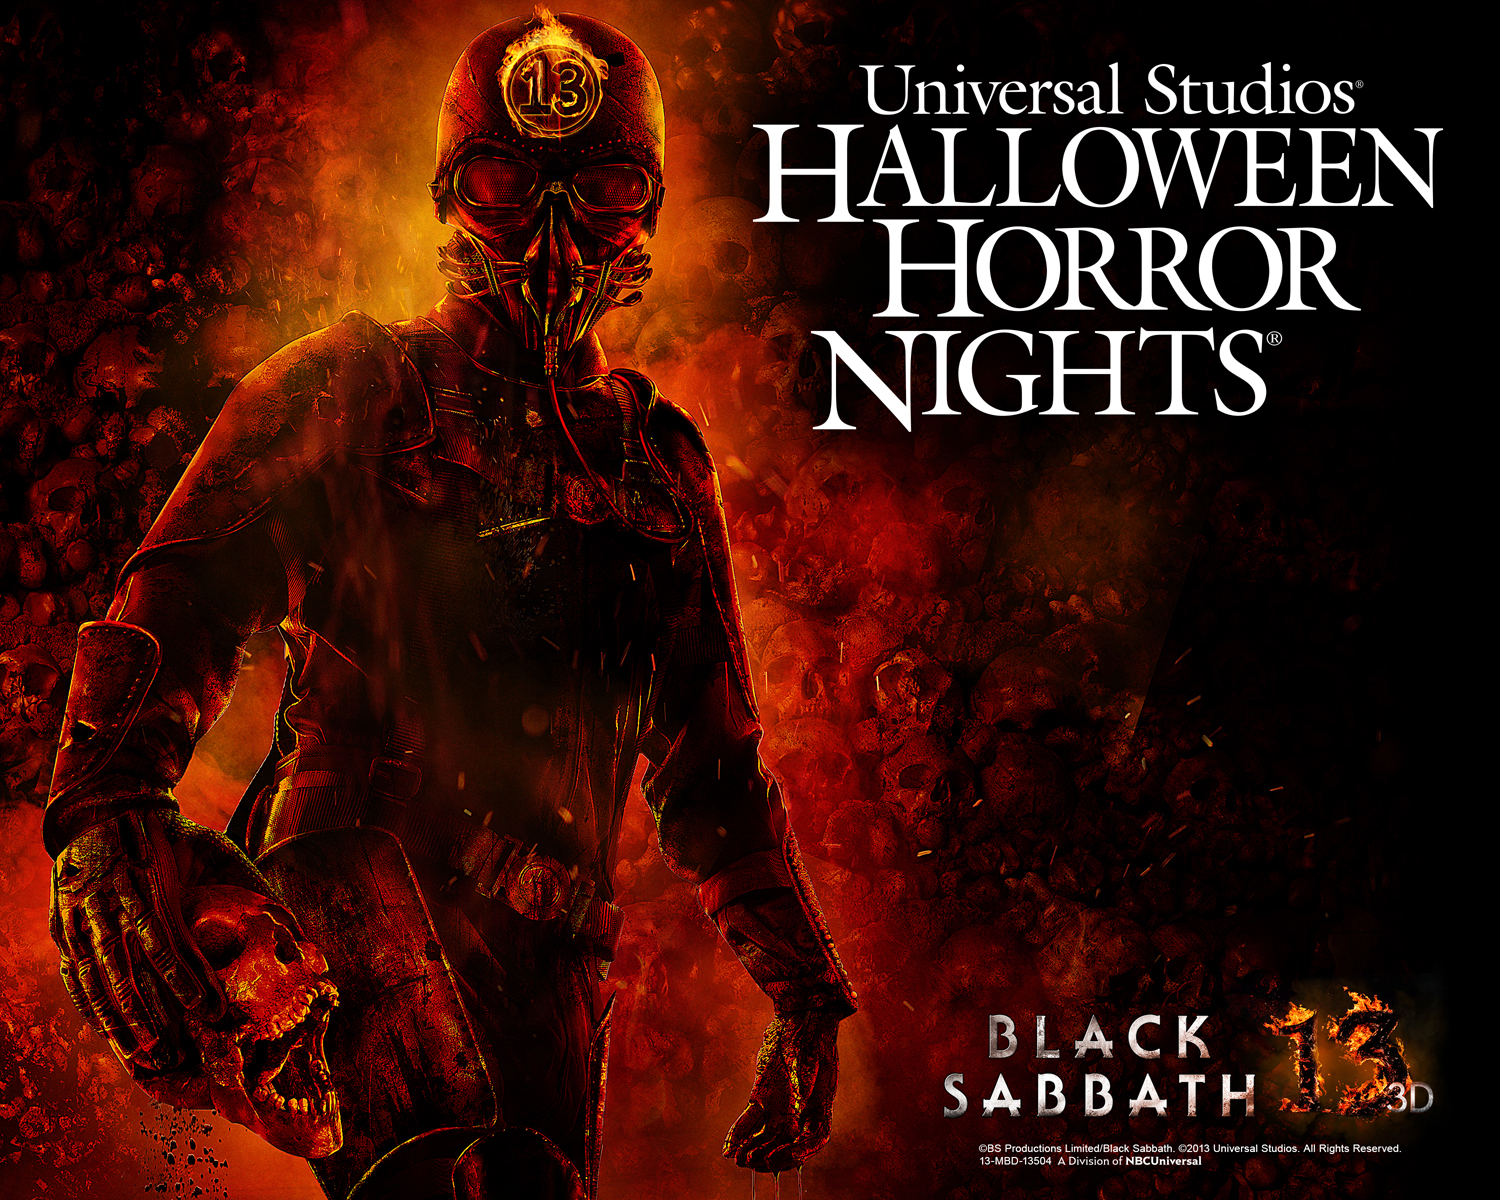 Black Sabbath Haunted Maze Is Part of Halloween Horror Nights at ...